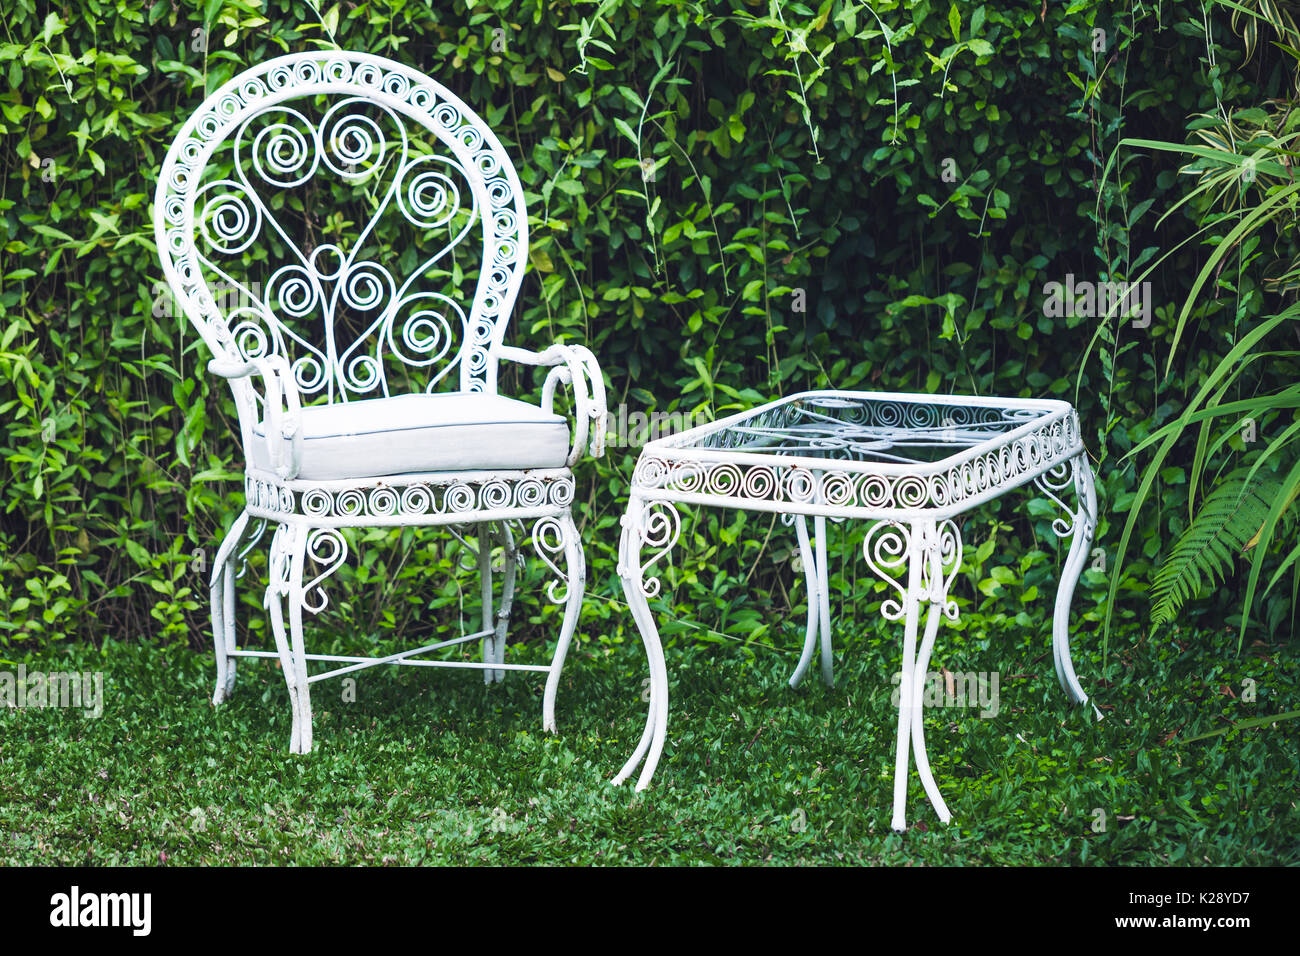 Old vintage furniture in garden with natural green background. White metal  chair and table, - Vintage Garden Furniture Stock Photos & Vintage Garden Furniture